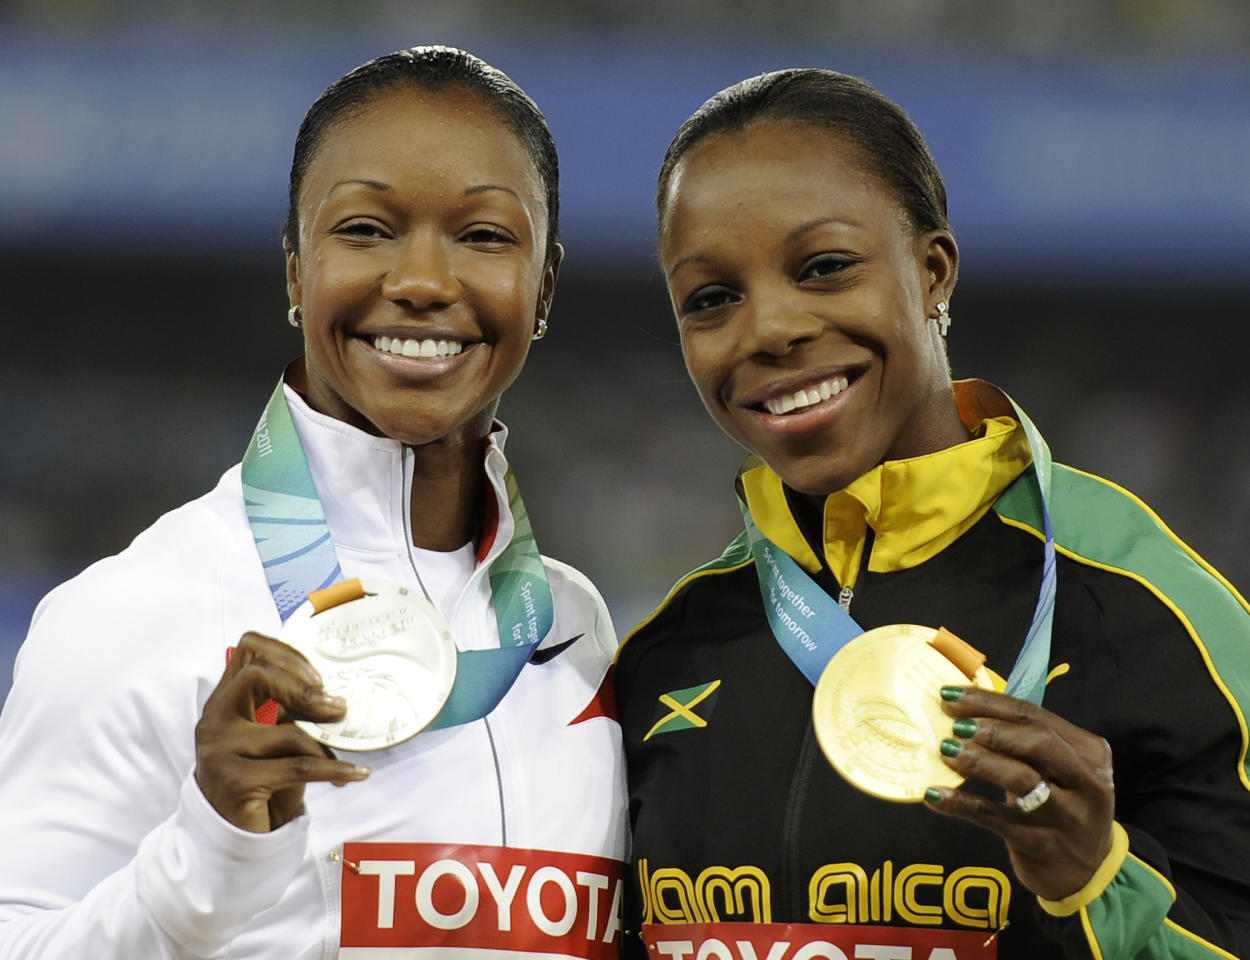 Jamaica's Veronica Campbell-Brown, right, poses with her gold medal alongside silver medalist Carmelita Jeter of the U.S. during the medal ceremony for the Women's 200m at the World Athletics Championships in Daegu, South Korea, Saturday, Sept. 3, 2011. (AP Photo/Martin Meissner)